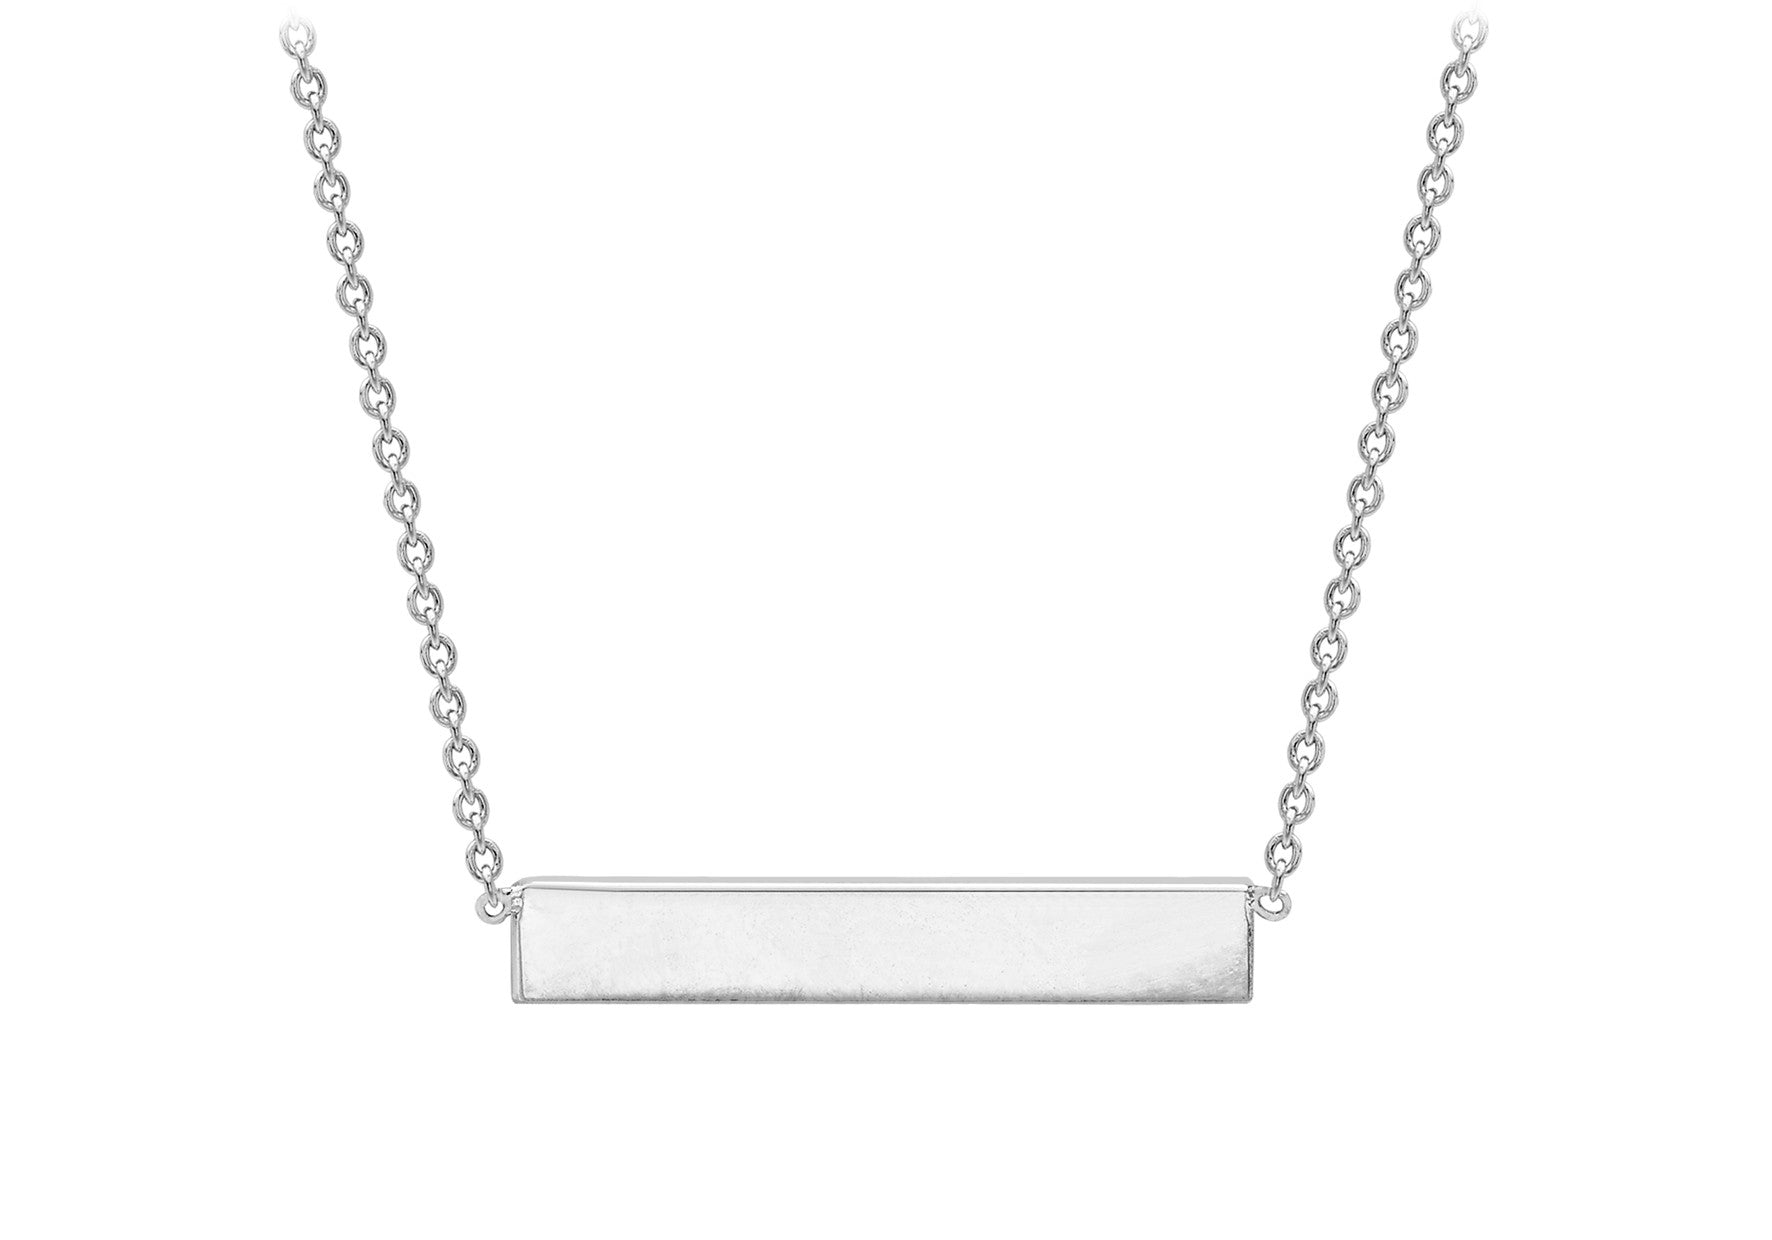 9ct White Gold Bar Necklace